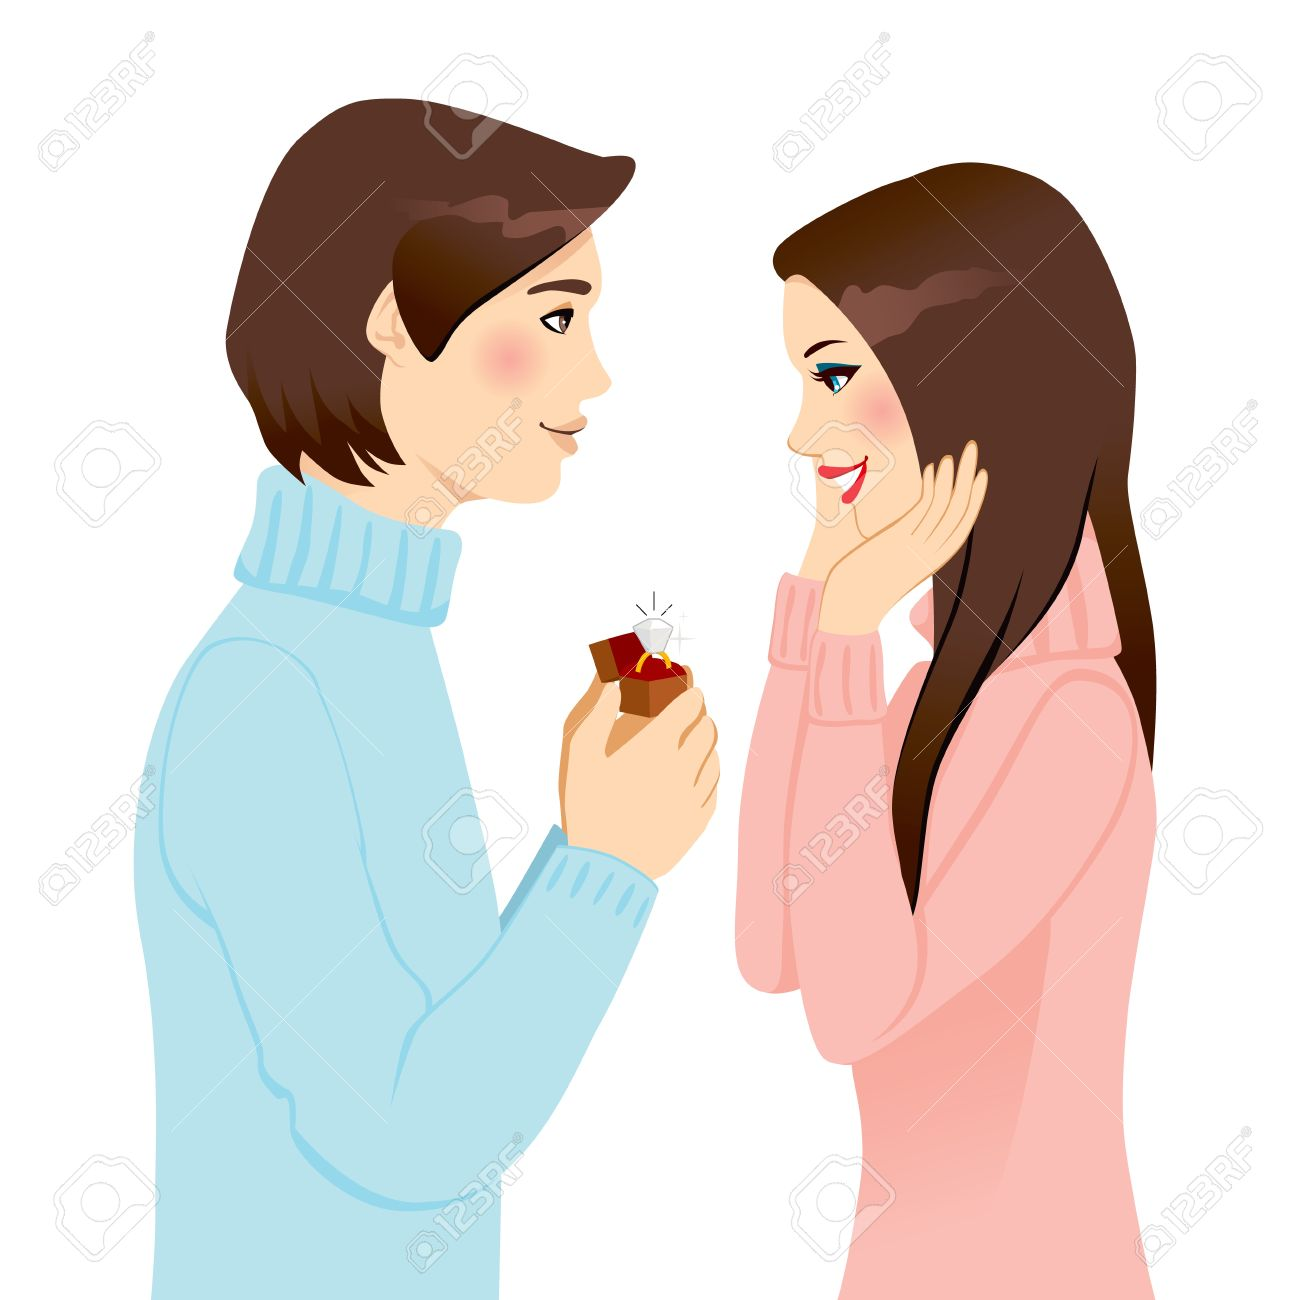 Handsome man proposing marriage with diamond engagement ring to surprised woman Stock Vector - 14712029